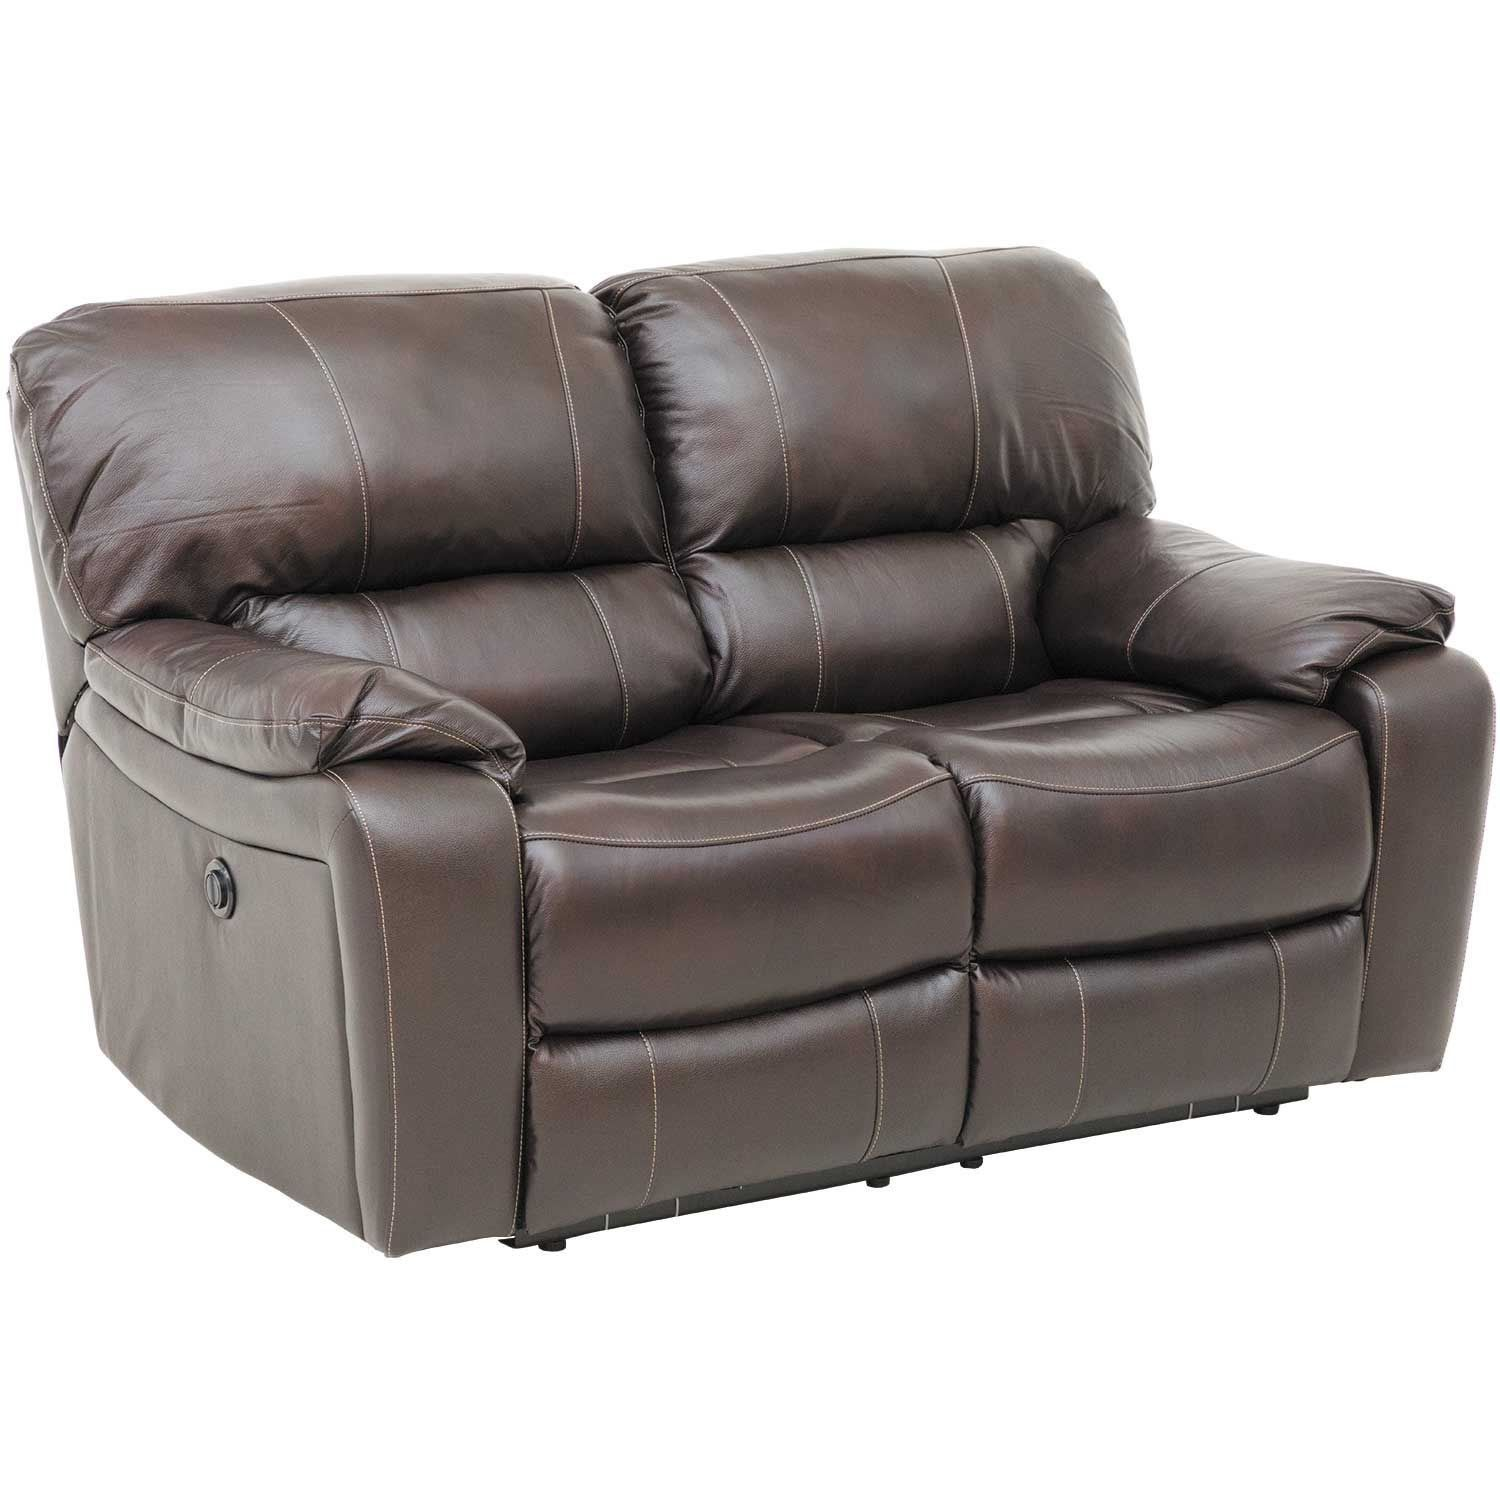 Leather Reclining Loveseat Picture Of Wade Brown Top Grain Leather Reclining Loveseat Leather Reclining Loveseat Leather Loveseat Power Reclining Loveseat